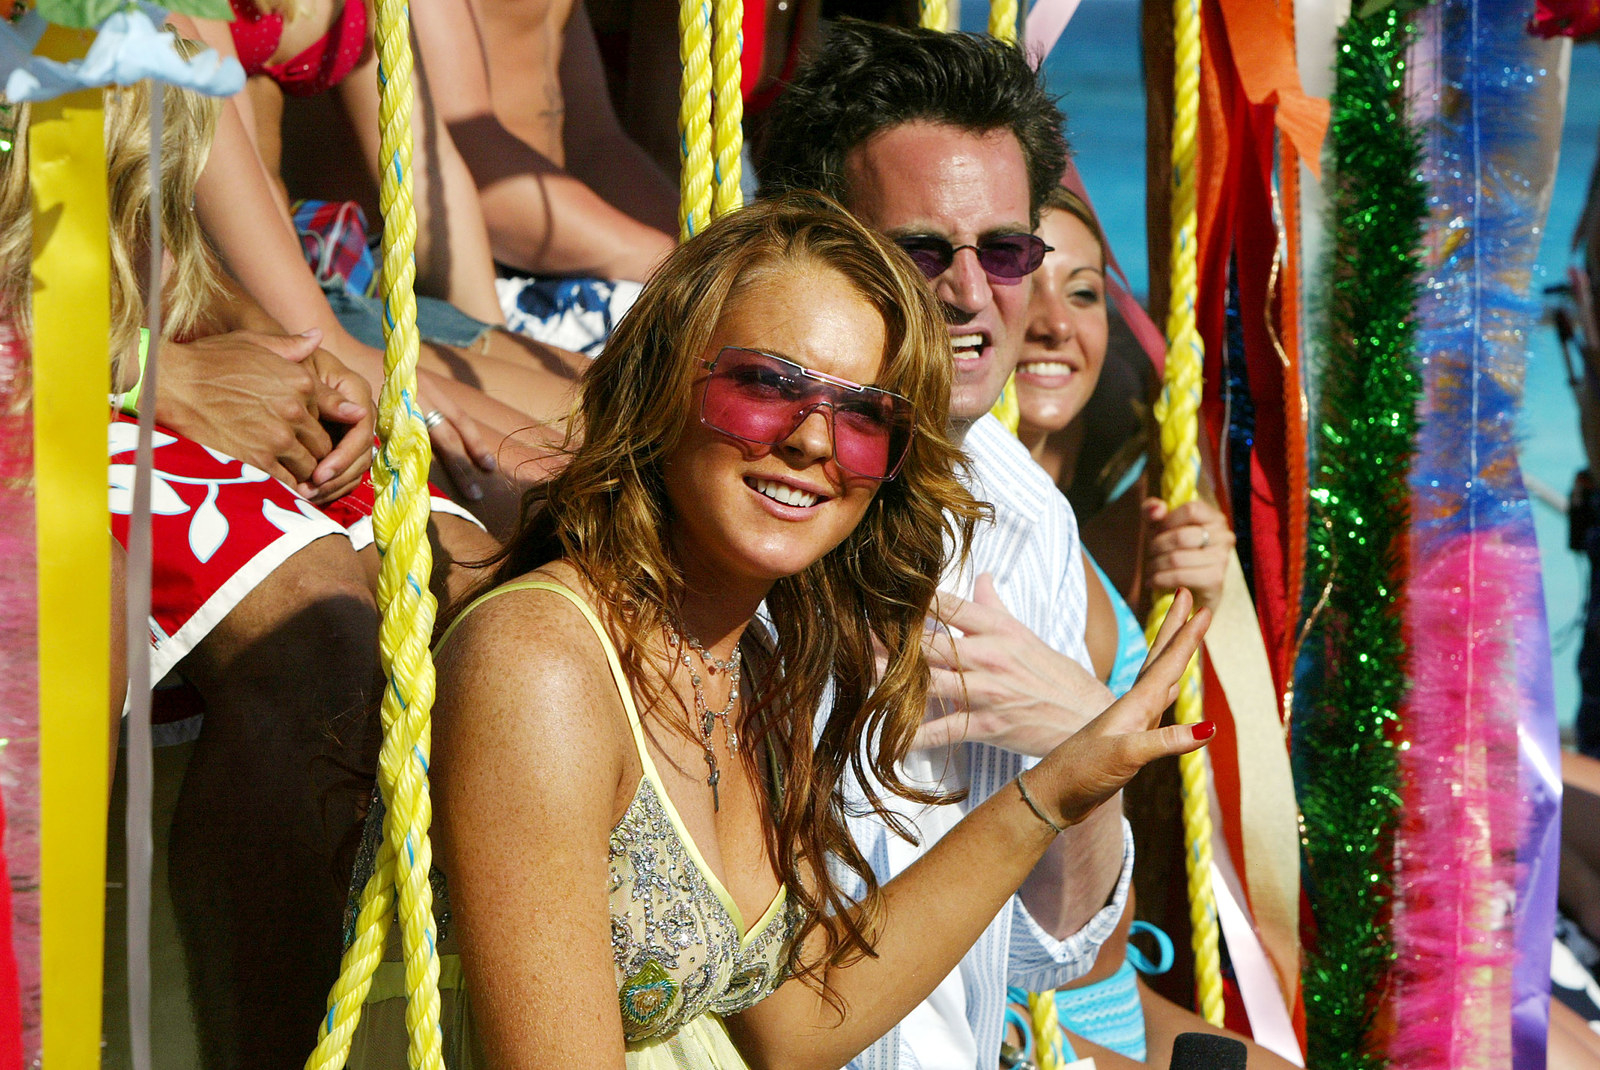 Matthew Perry and Lindsay Lohan as MTV Spring Break onlookers.